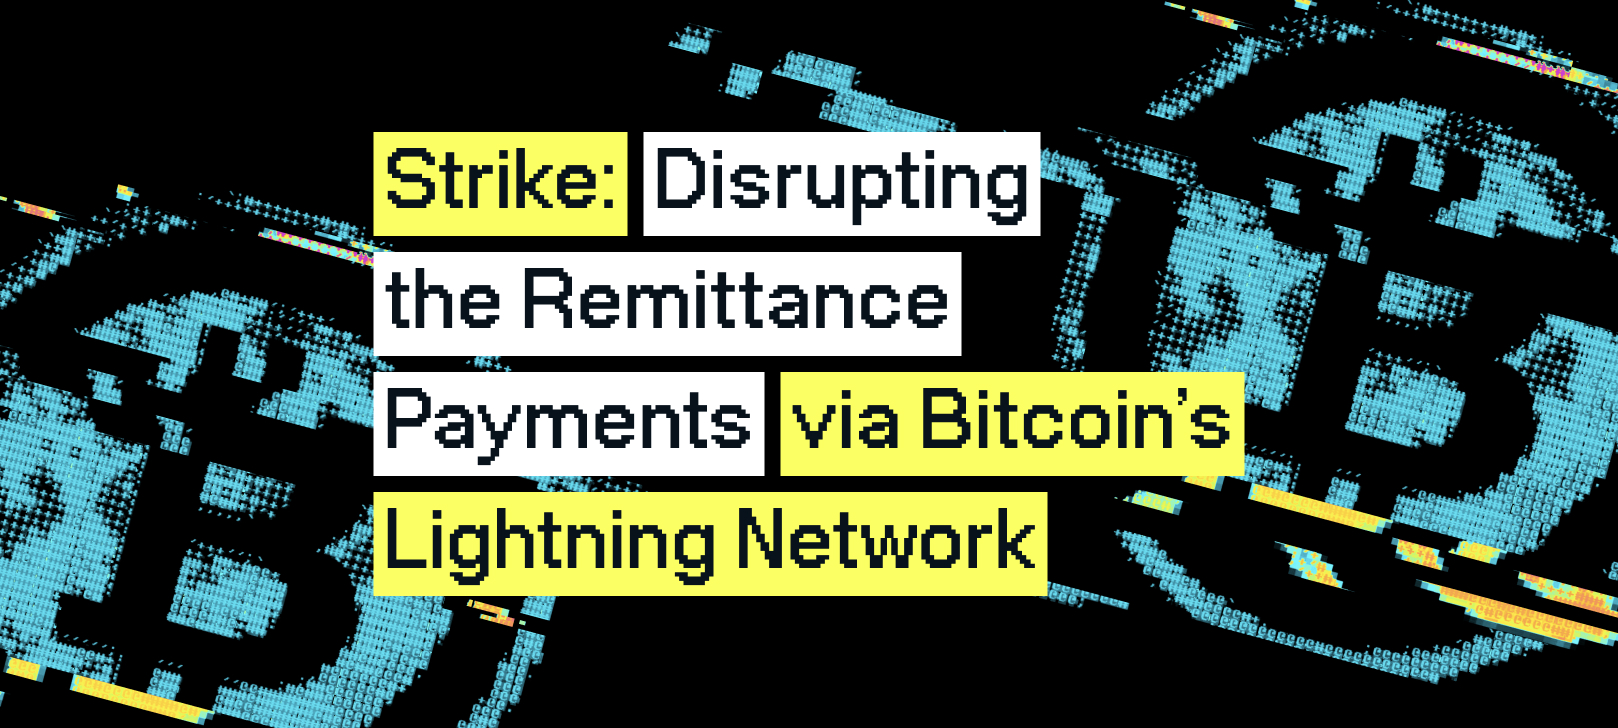 Strike: Disrupting the remittance payments via Bitcoin's Lightning Network